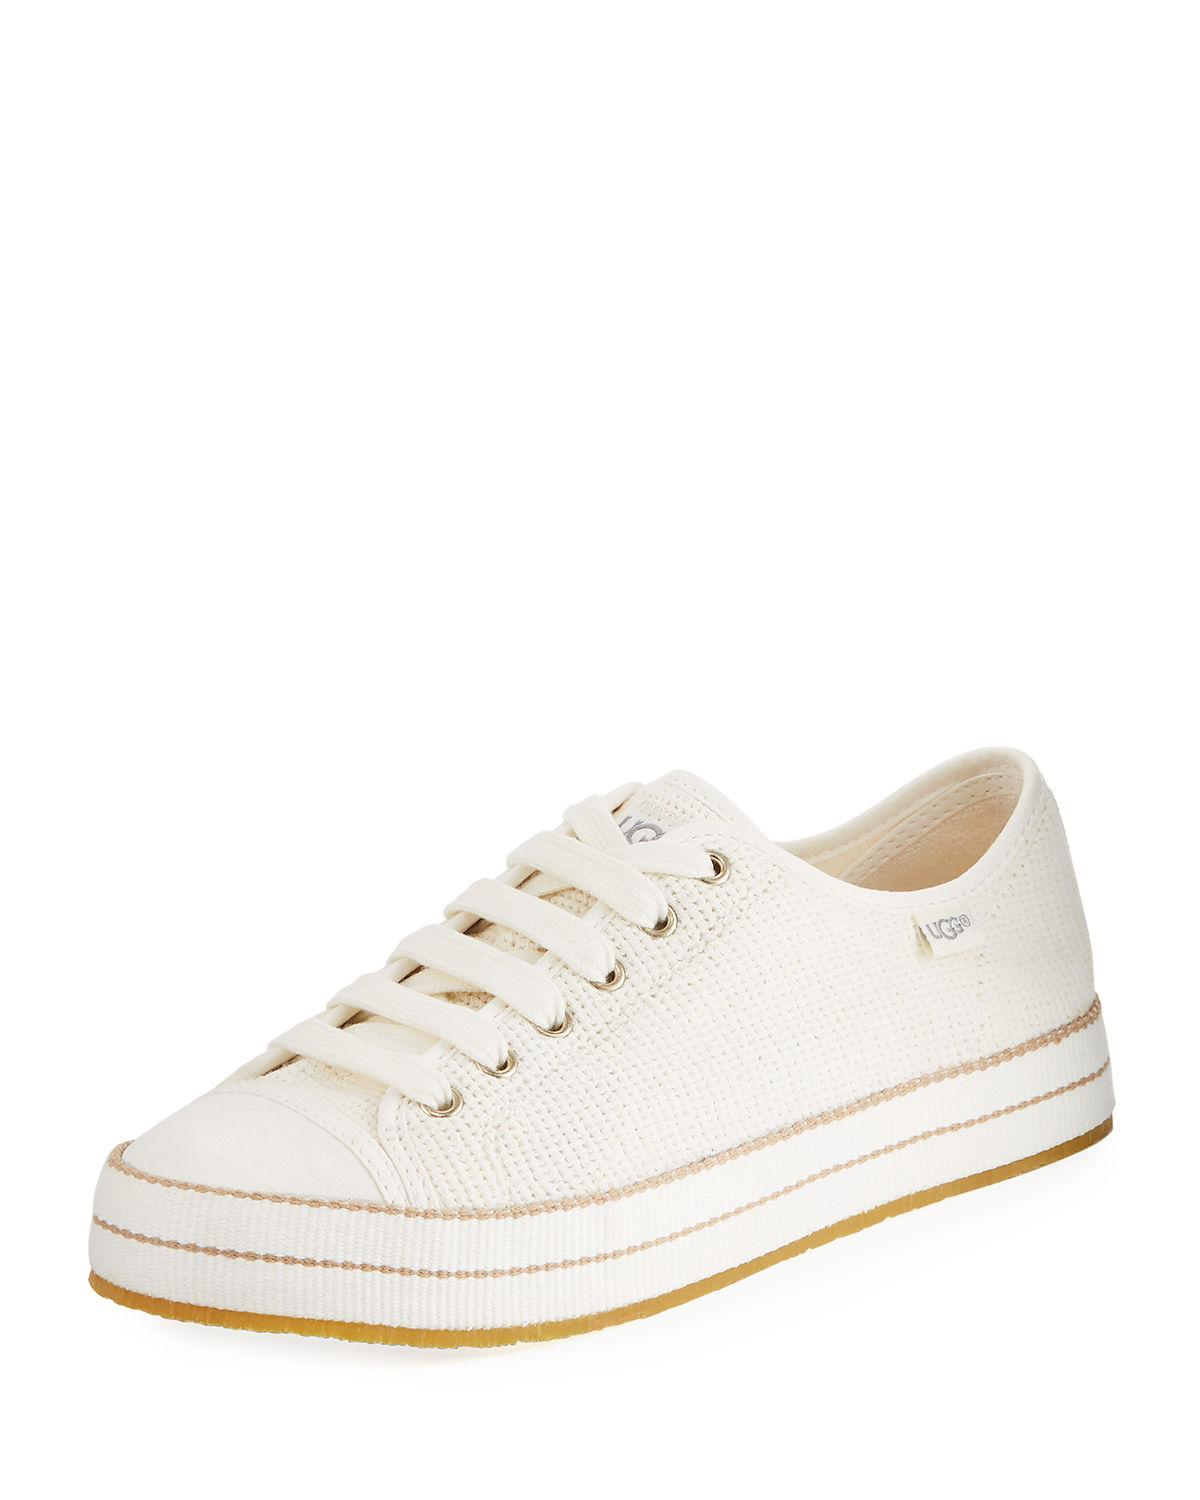 887a2c288bd Claudi Knit Lace-Up Sneakers in Natural